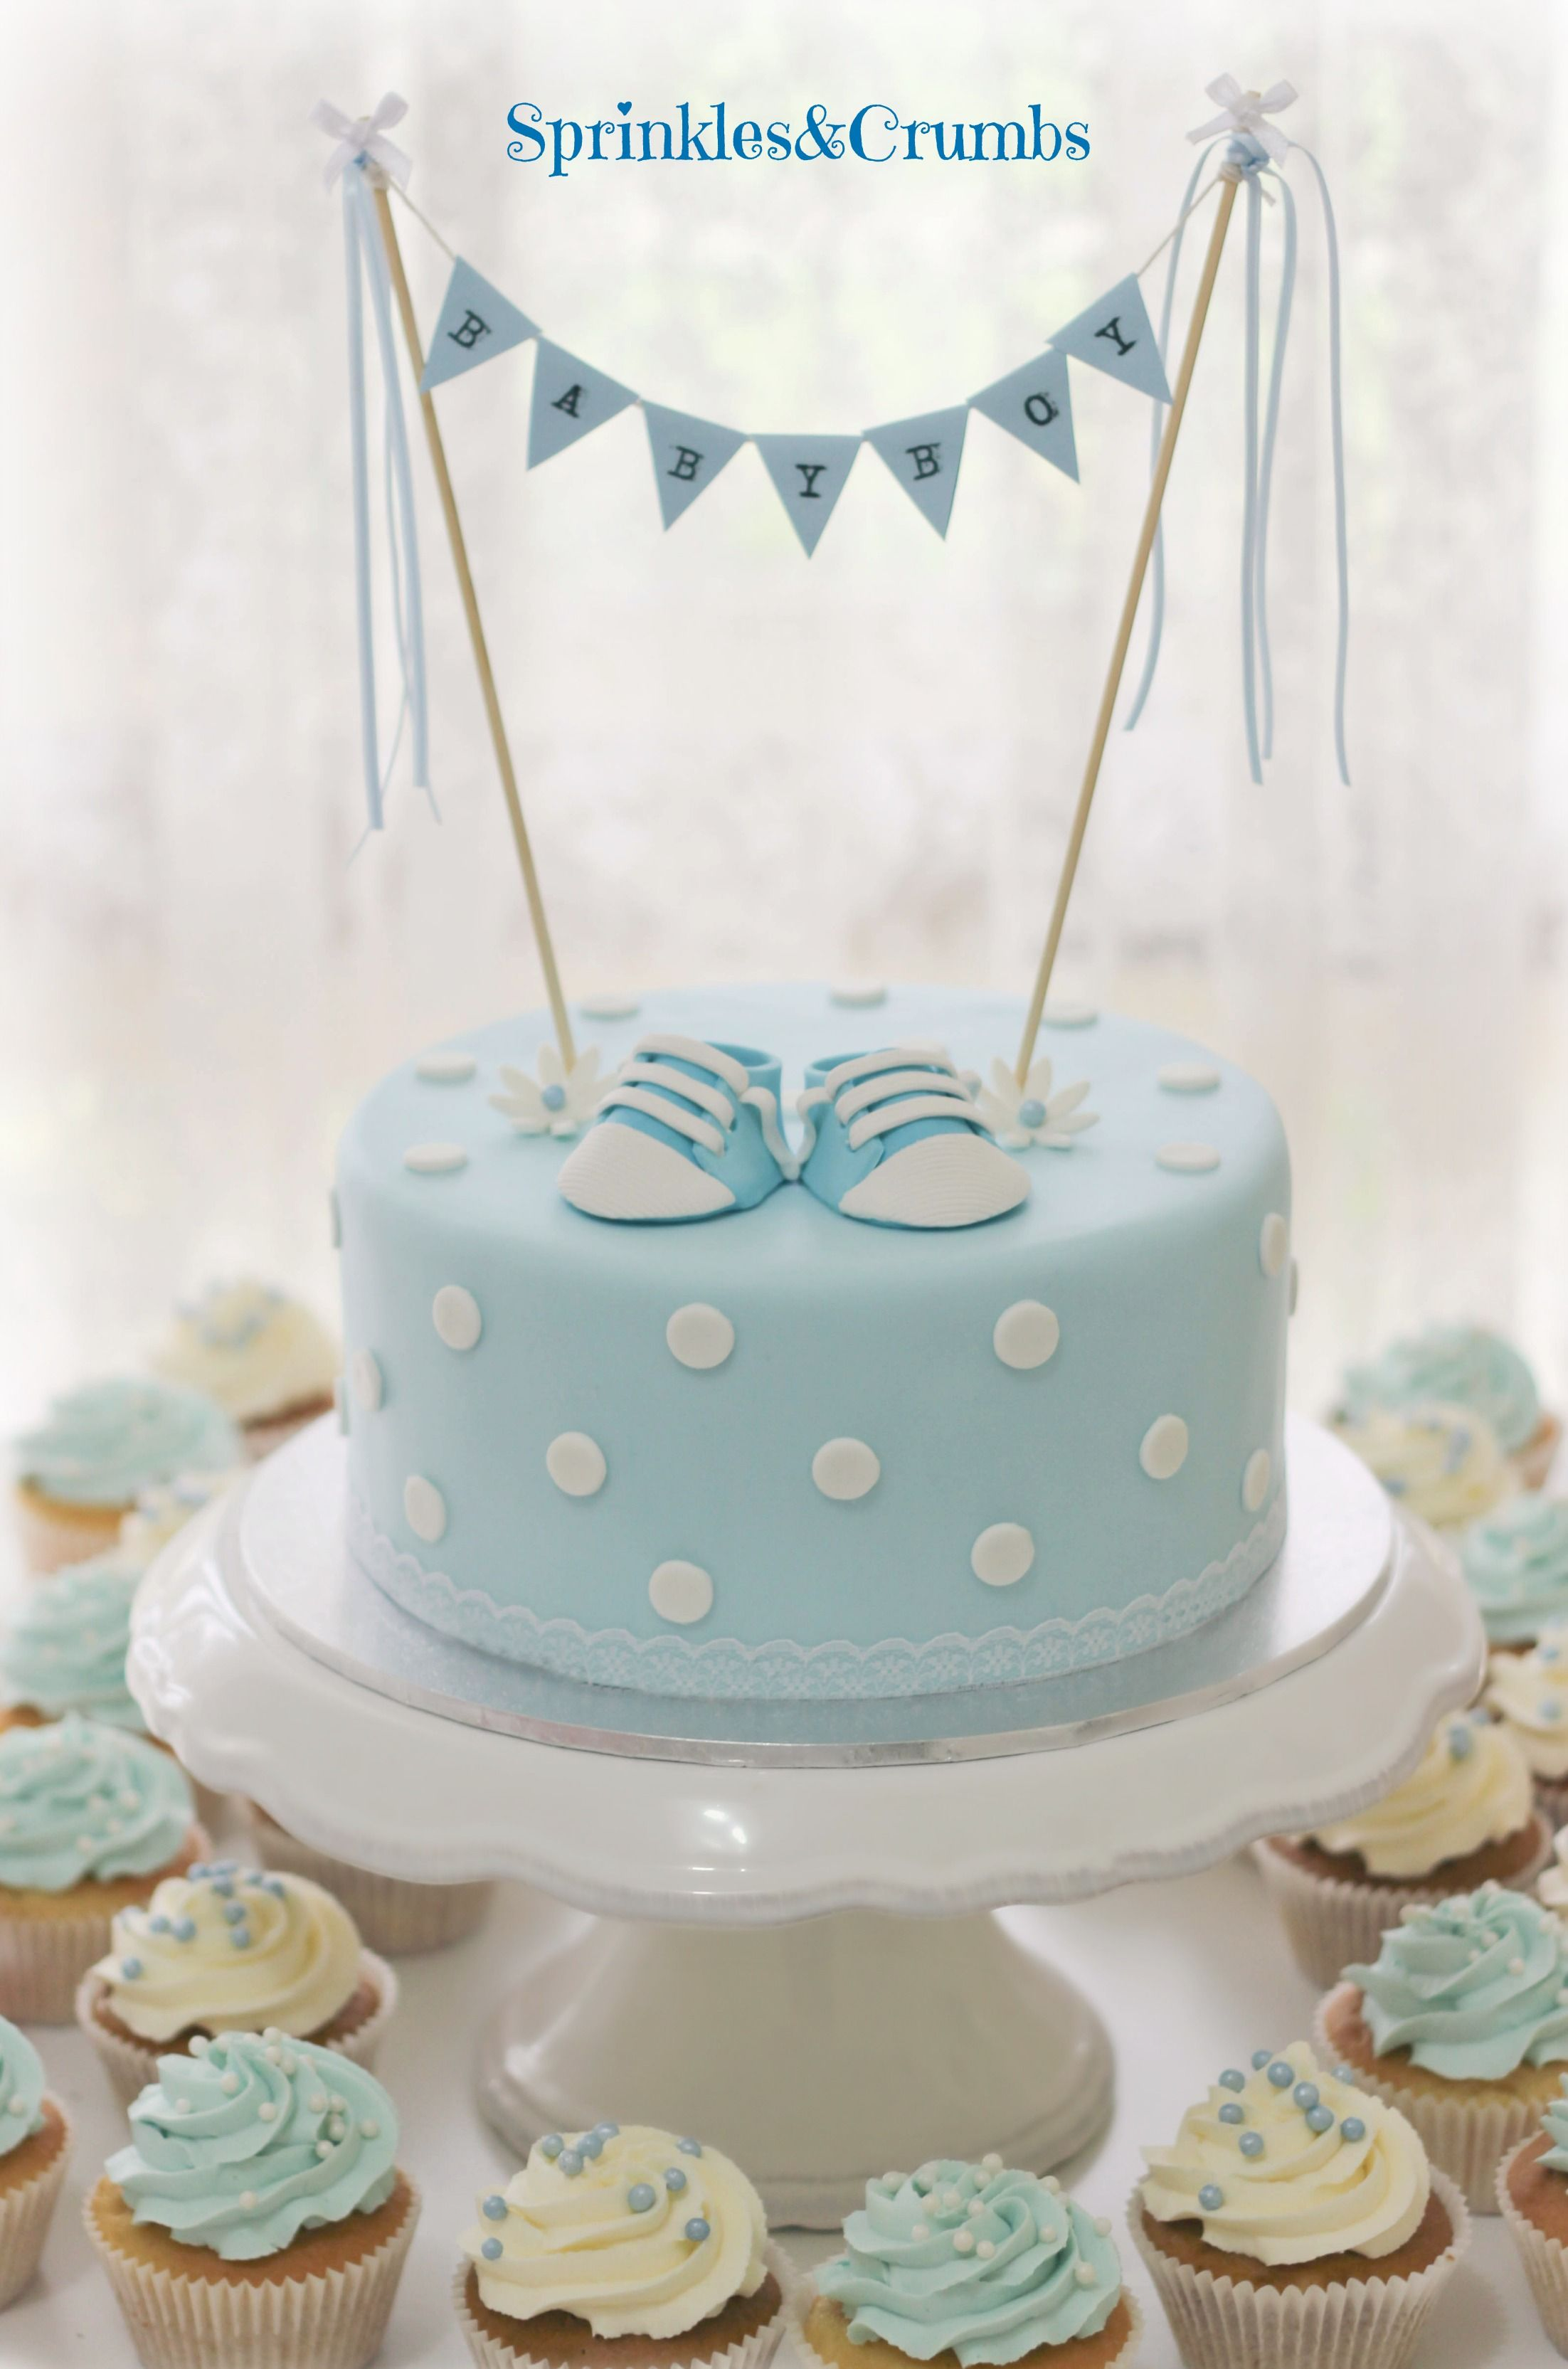 Baby Shower Blue And White Themed Cake With Polka Dots And